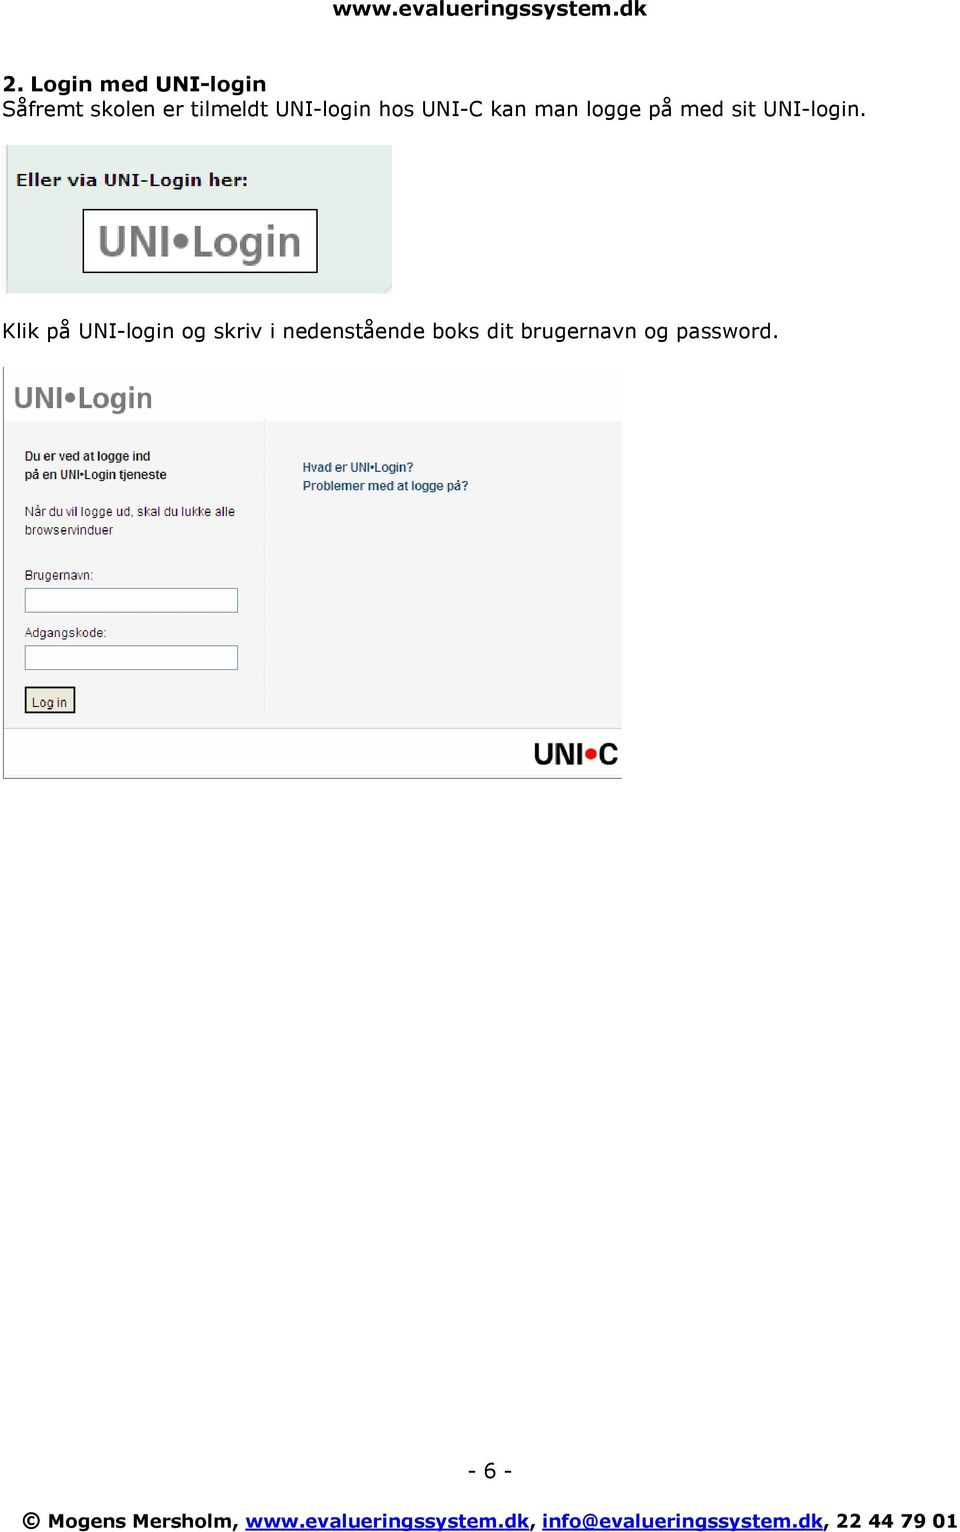 med sit UNI-login.